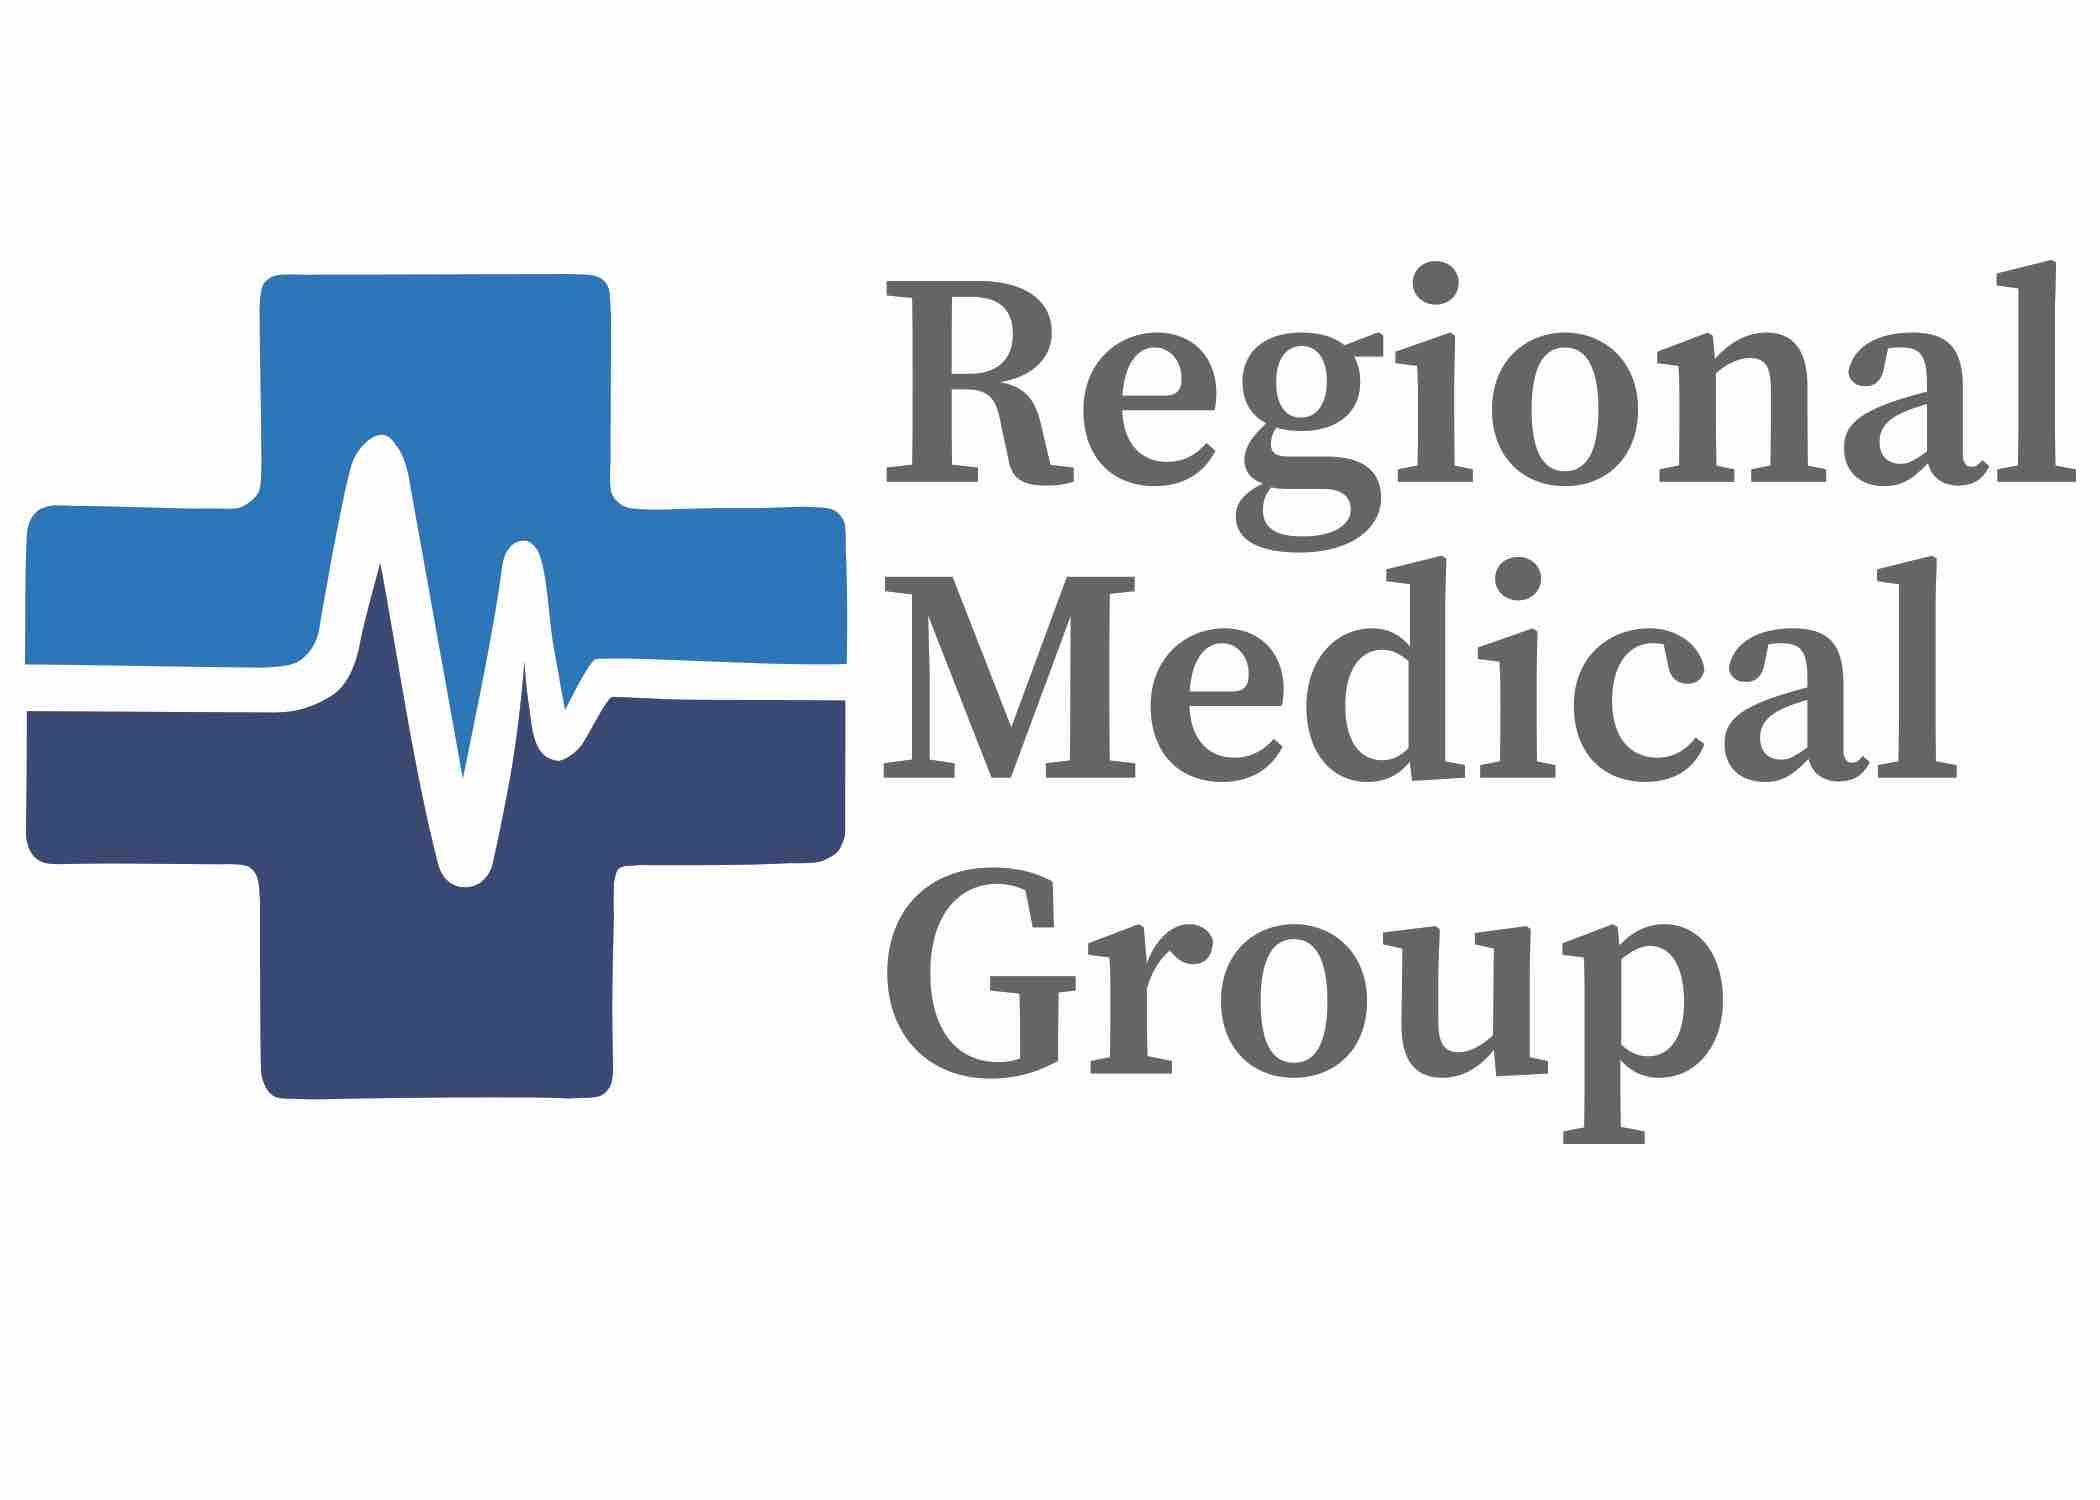 Regional Medical Group To Host A Personal Injury Networking Event in Dalton, Georgia